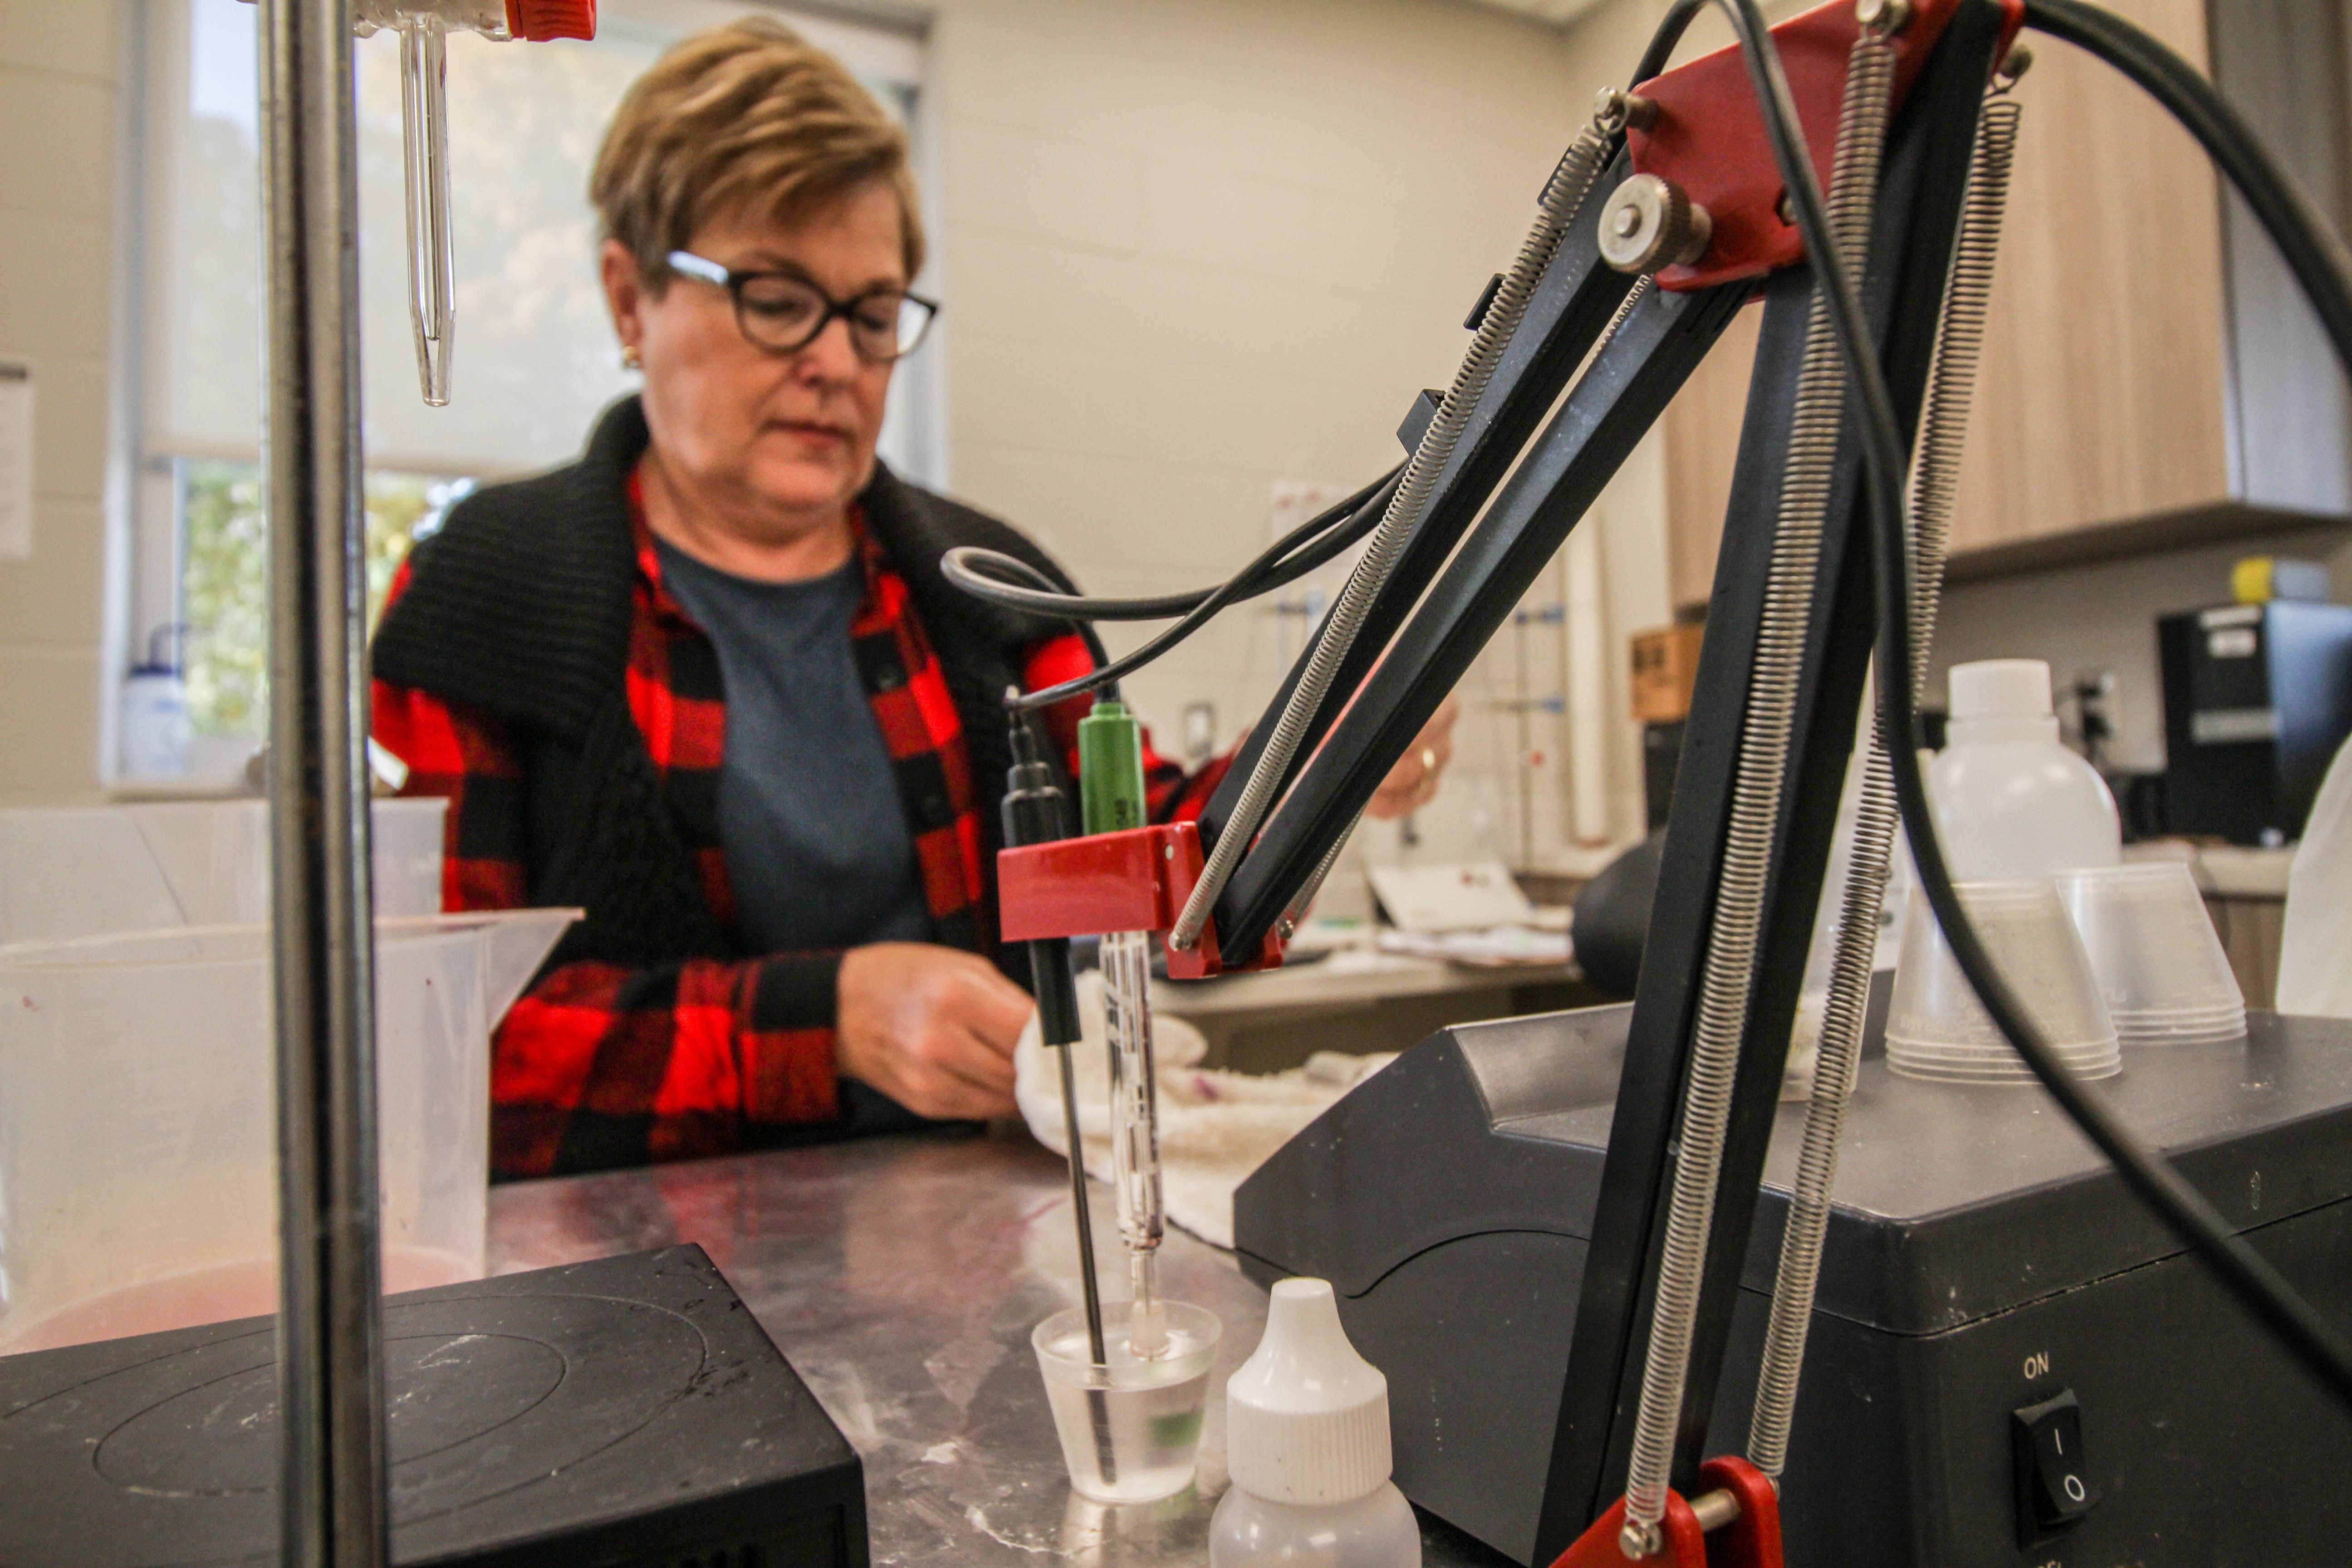 In the background, an older white woman with glasses, brown hair, and a red and black plaid shirt is taking measurements in a laboratory. It is not entirely clear what her hands are doing. In the foreground, there are droppers and equipment for wine titration.